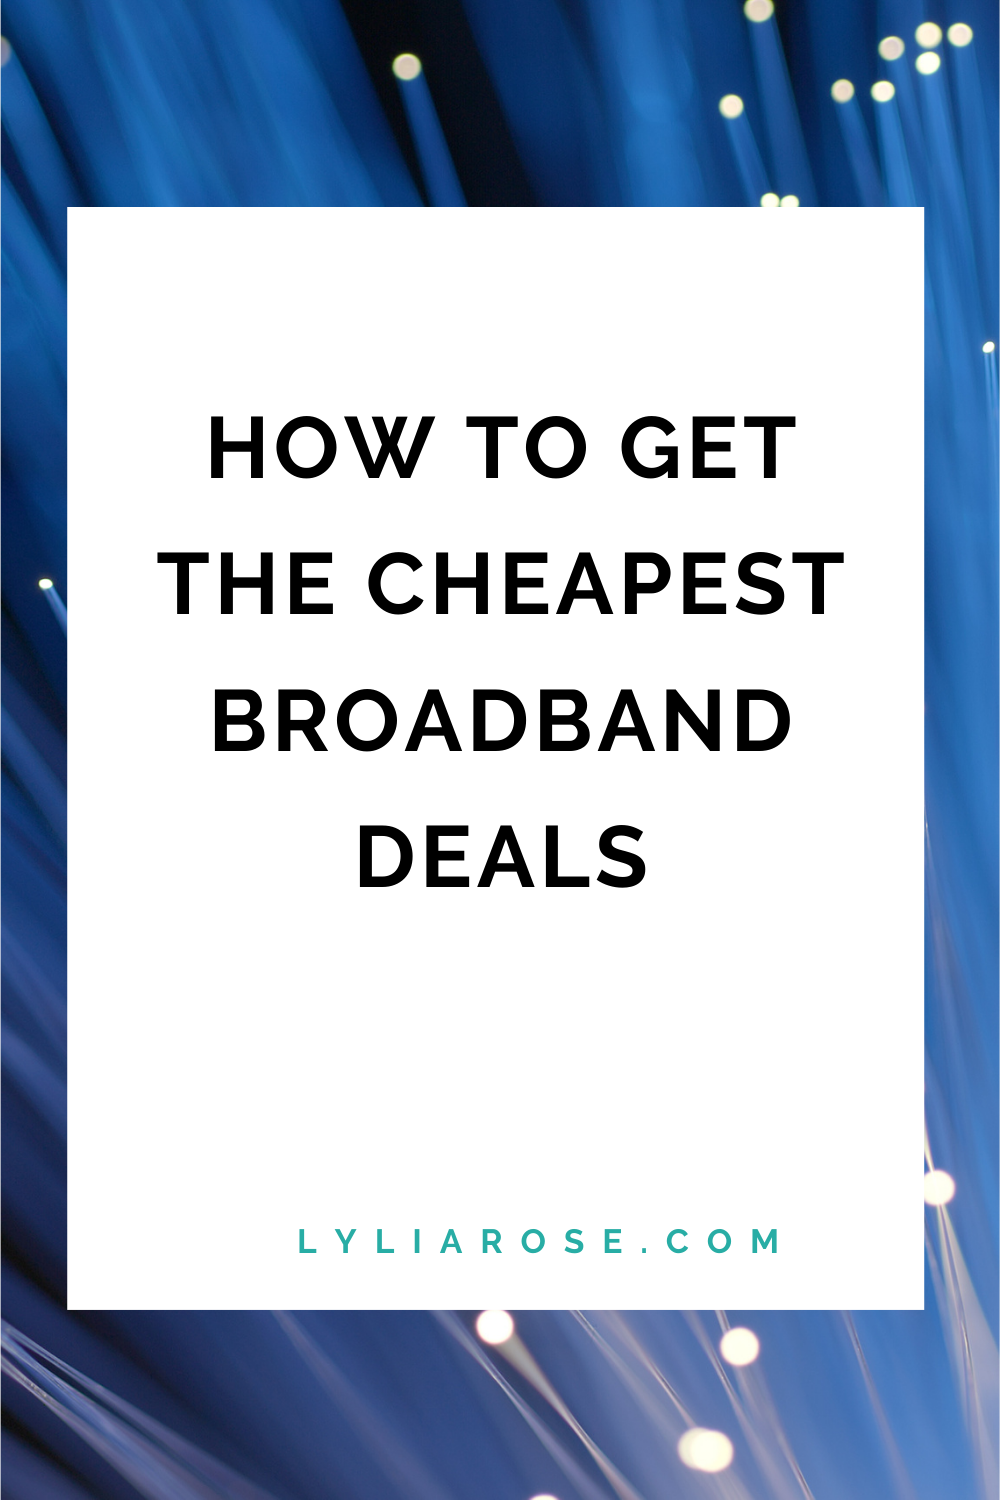 How to get the cheapest broadband deals